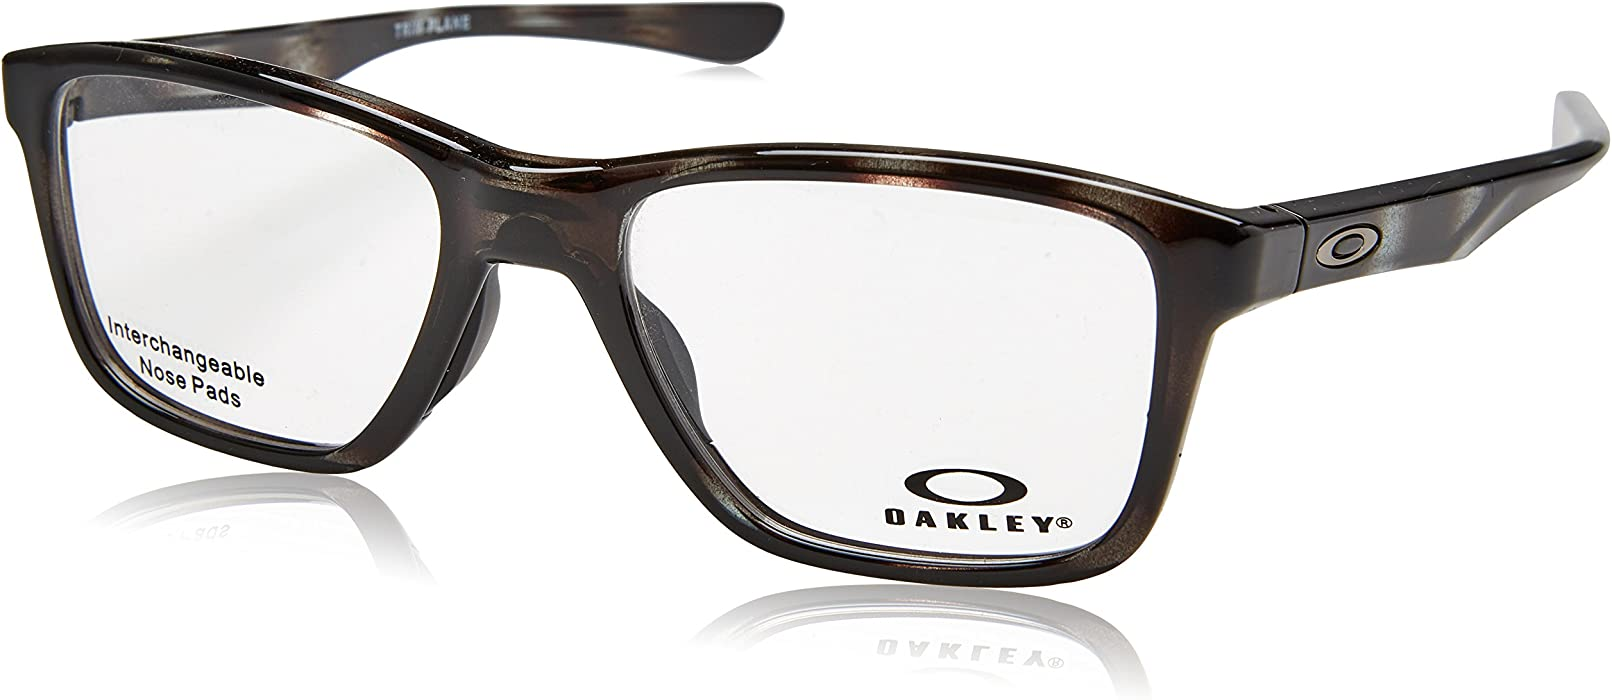 655900f20c58 Amazon.com  Oakley - Trim Plane (53) - Polished Brown Tortoise Frame Only   Clothing